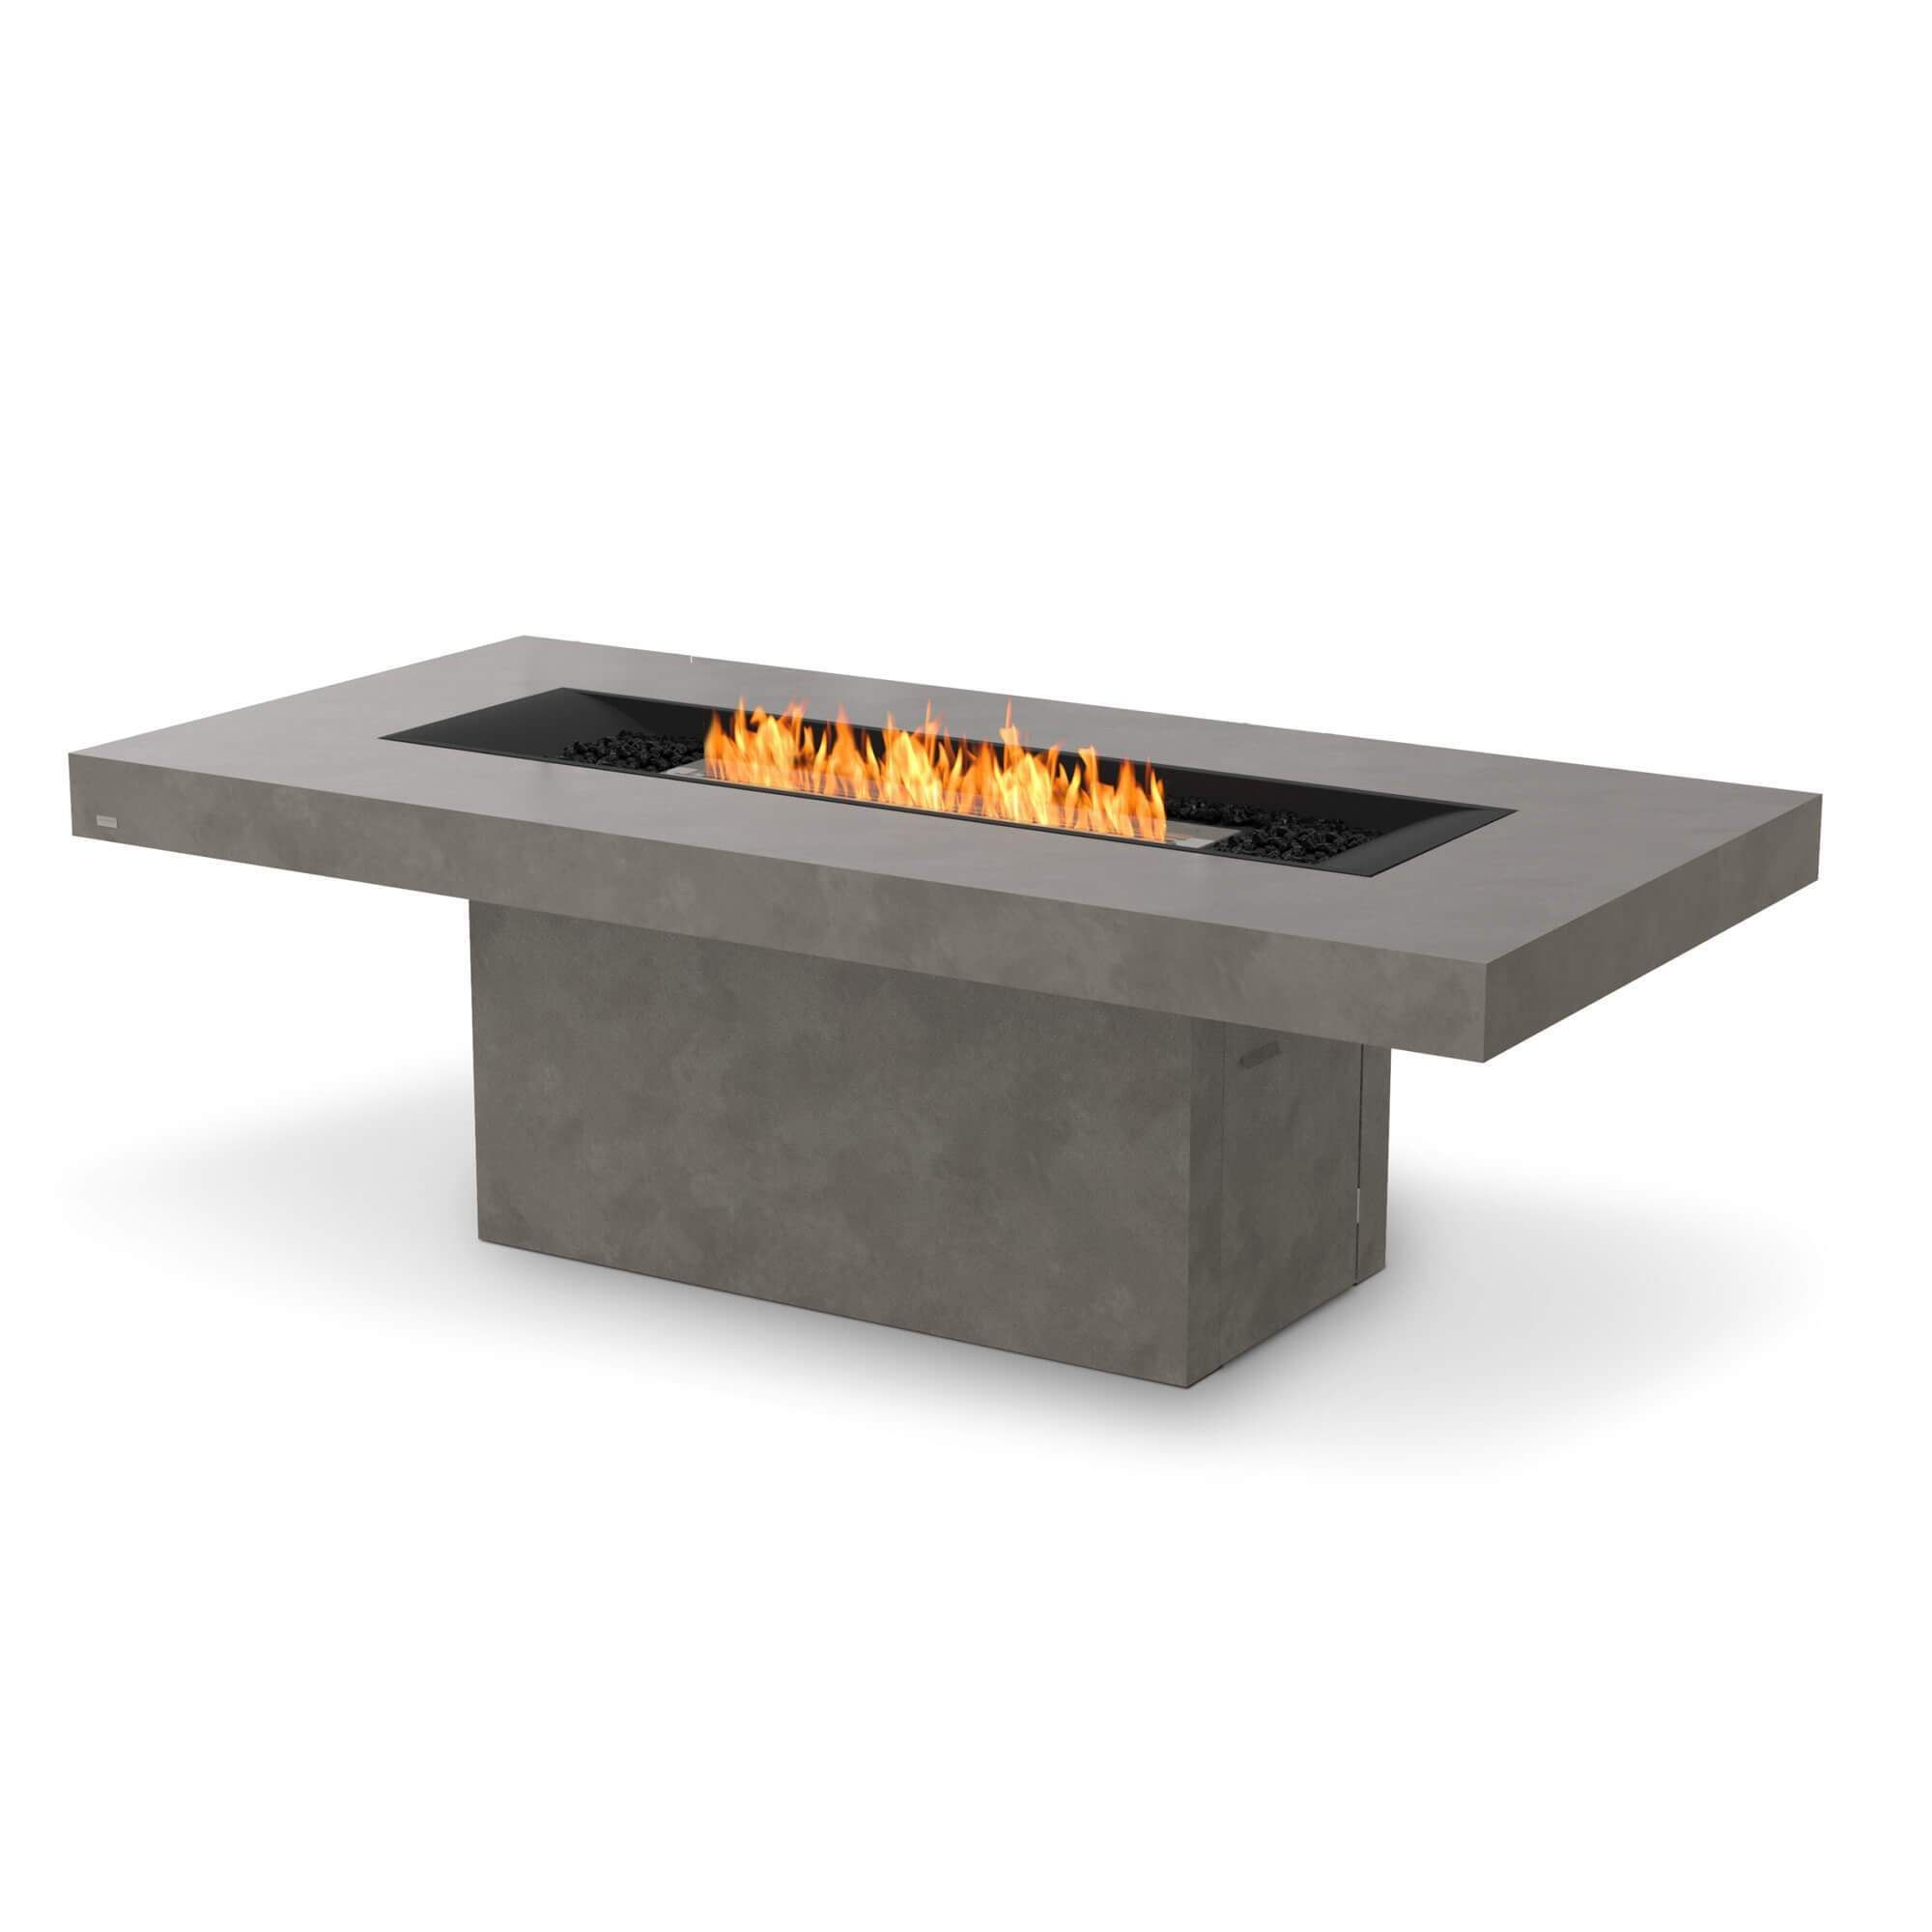 EcoSmart Fire Gin 90 Dining Bioethanol Fire Pit Table - Indoor / Natural / Stainless Steel